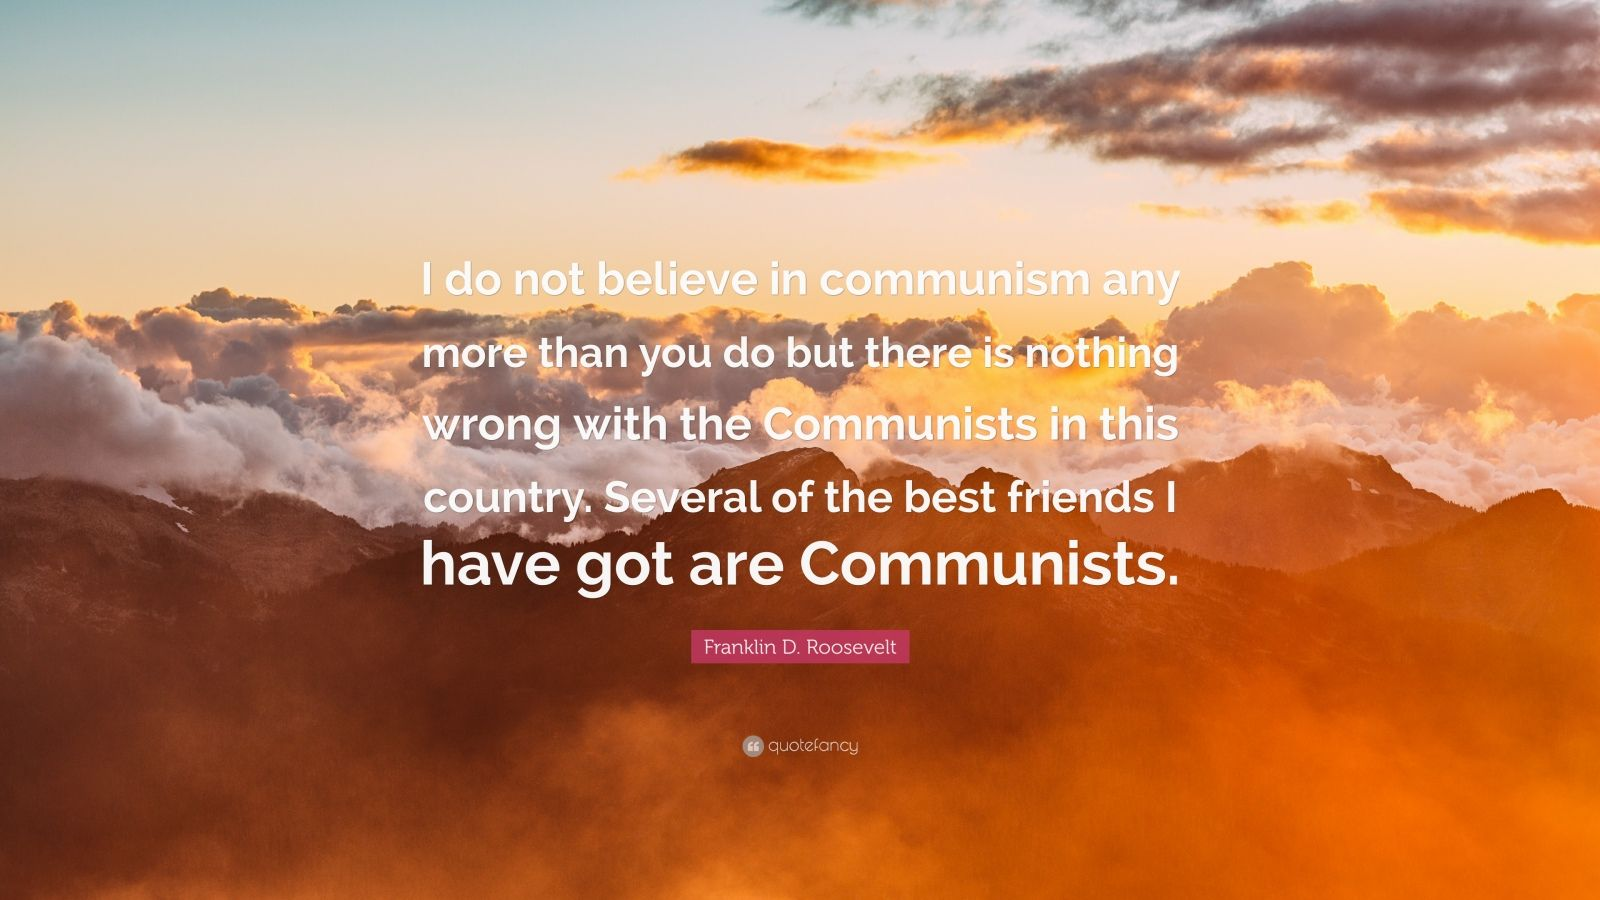 """Franklin D. Roosevelt Quote: """"I do not believe in communism any more than you do but there is nothing wrong with the Communists in this country. Several of the best friends I have got are Communists."""""""